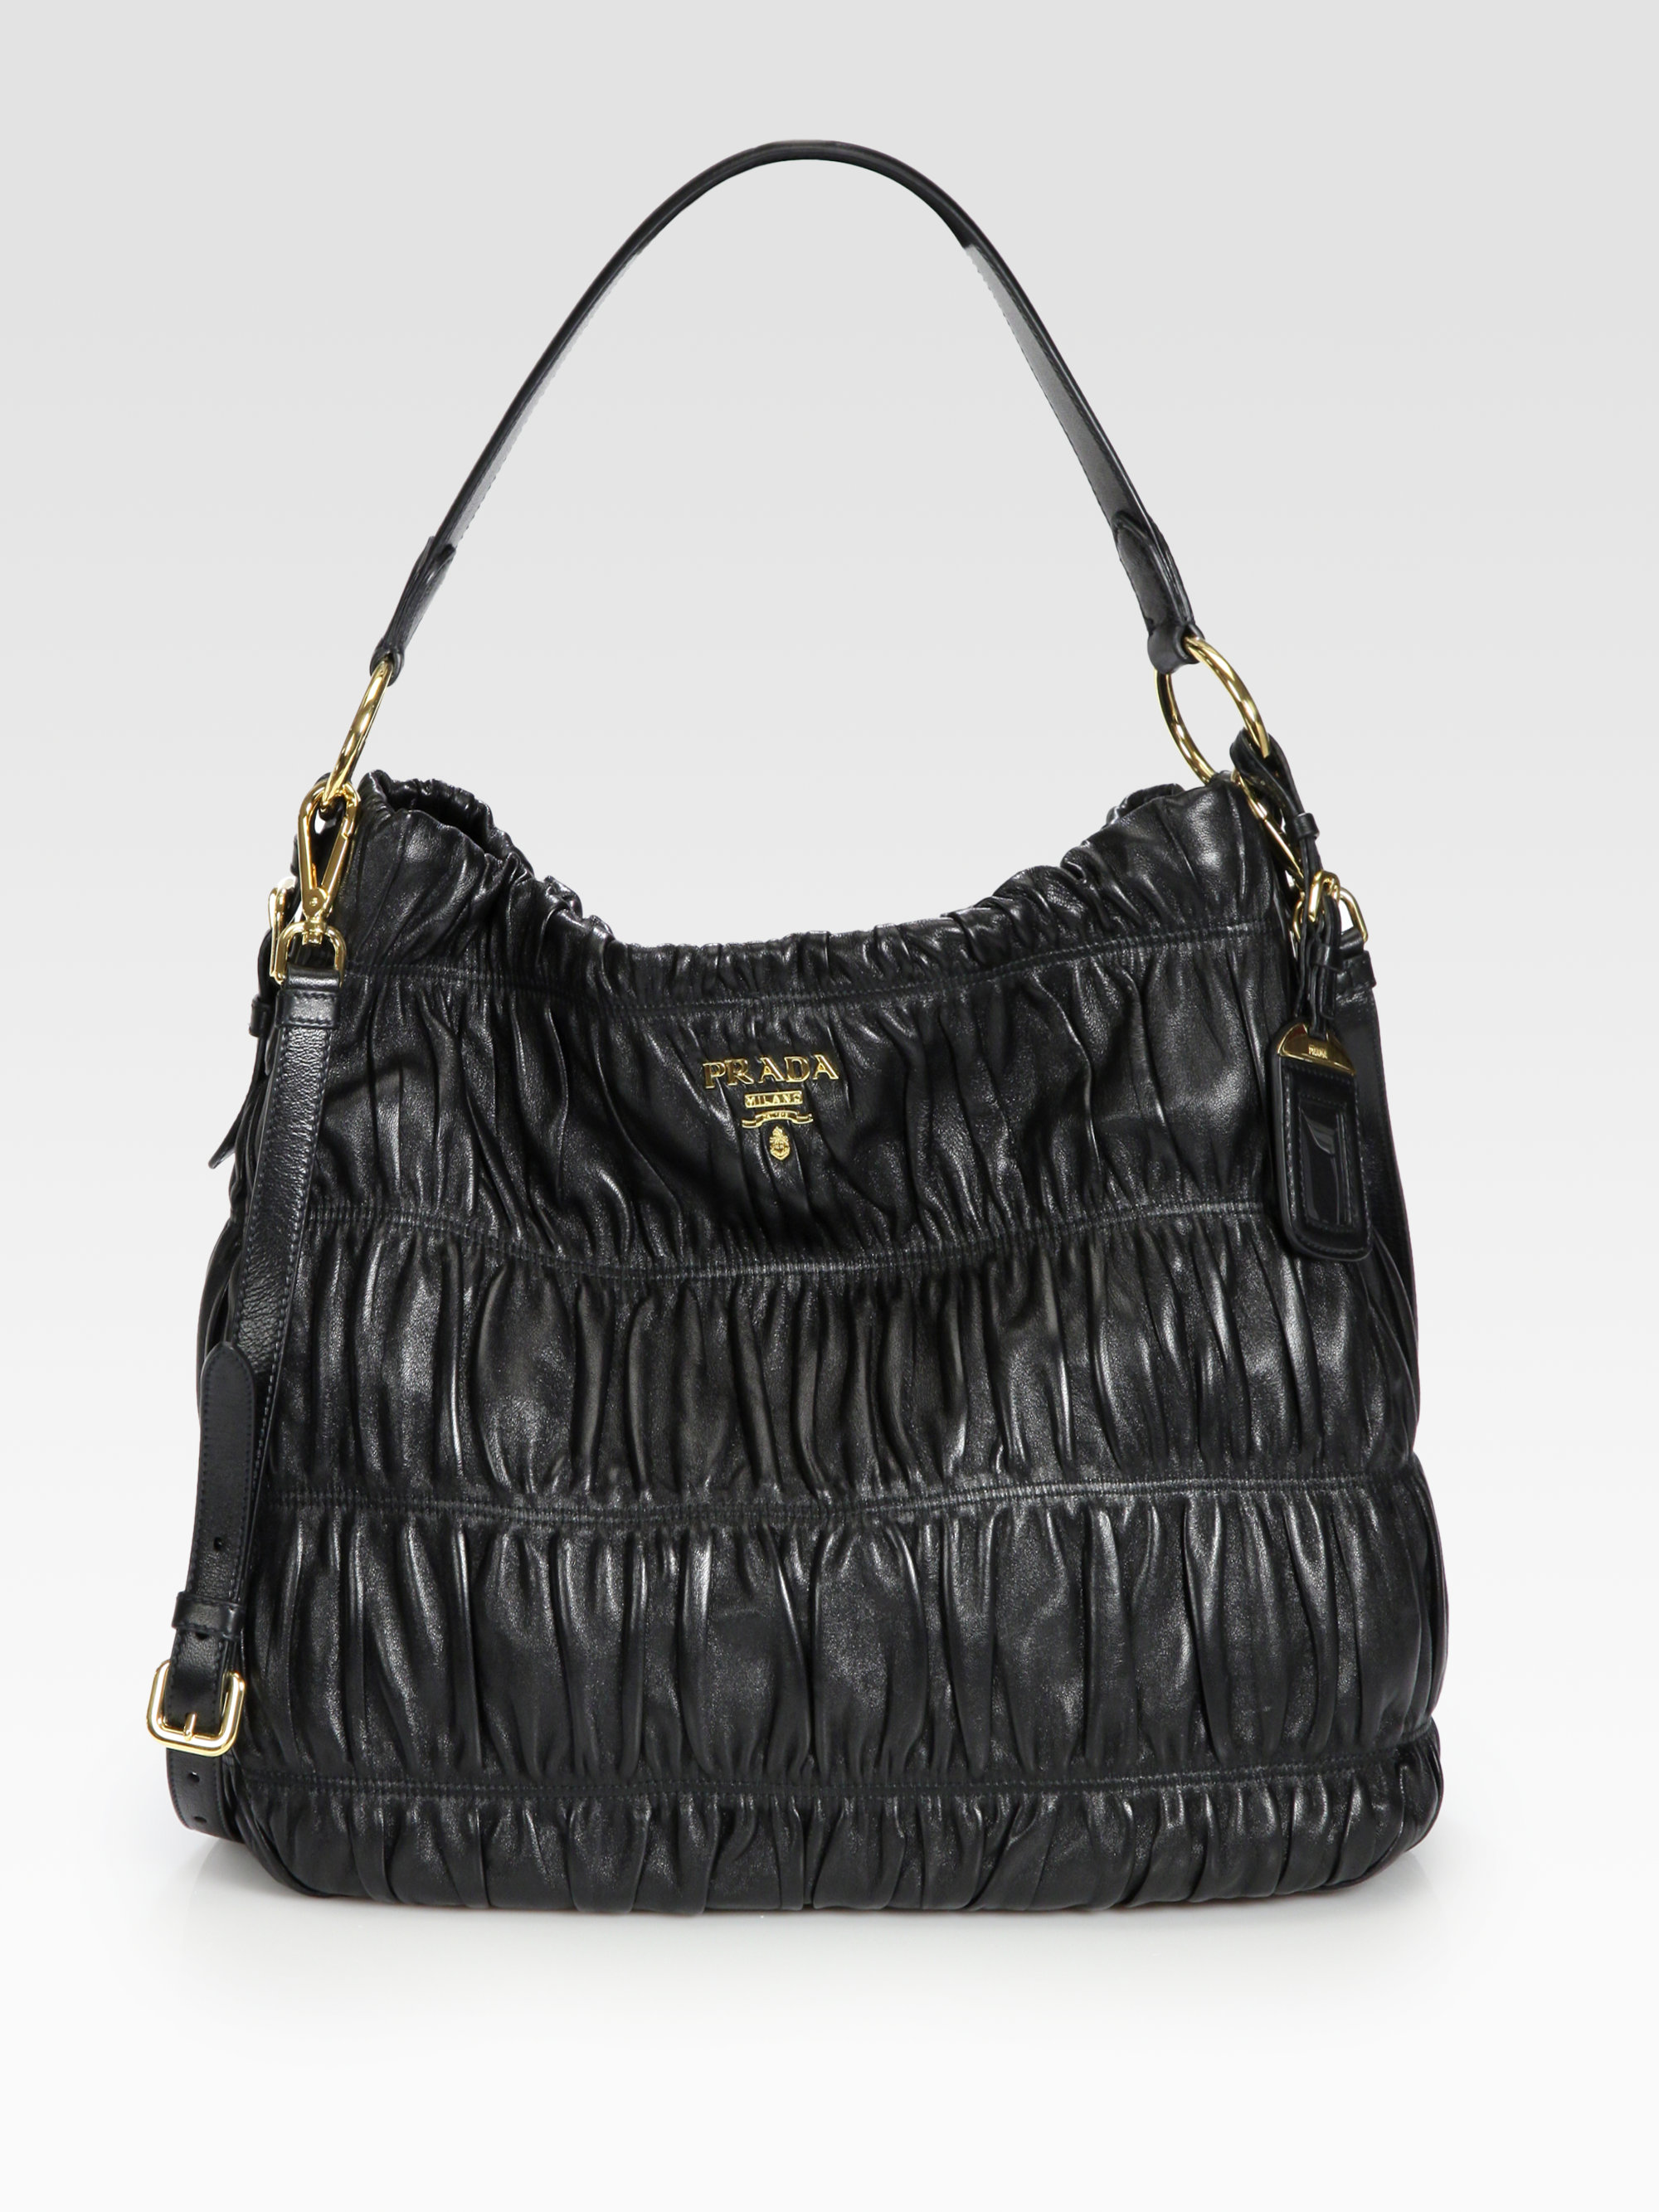 Prada Nappa Gaufre Ruched Leather Hobo in Black | Lyst